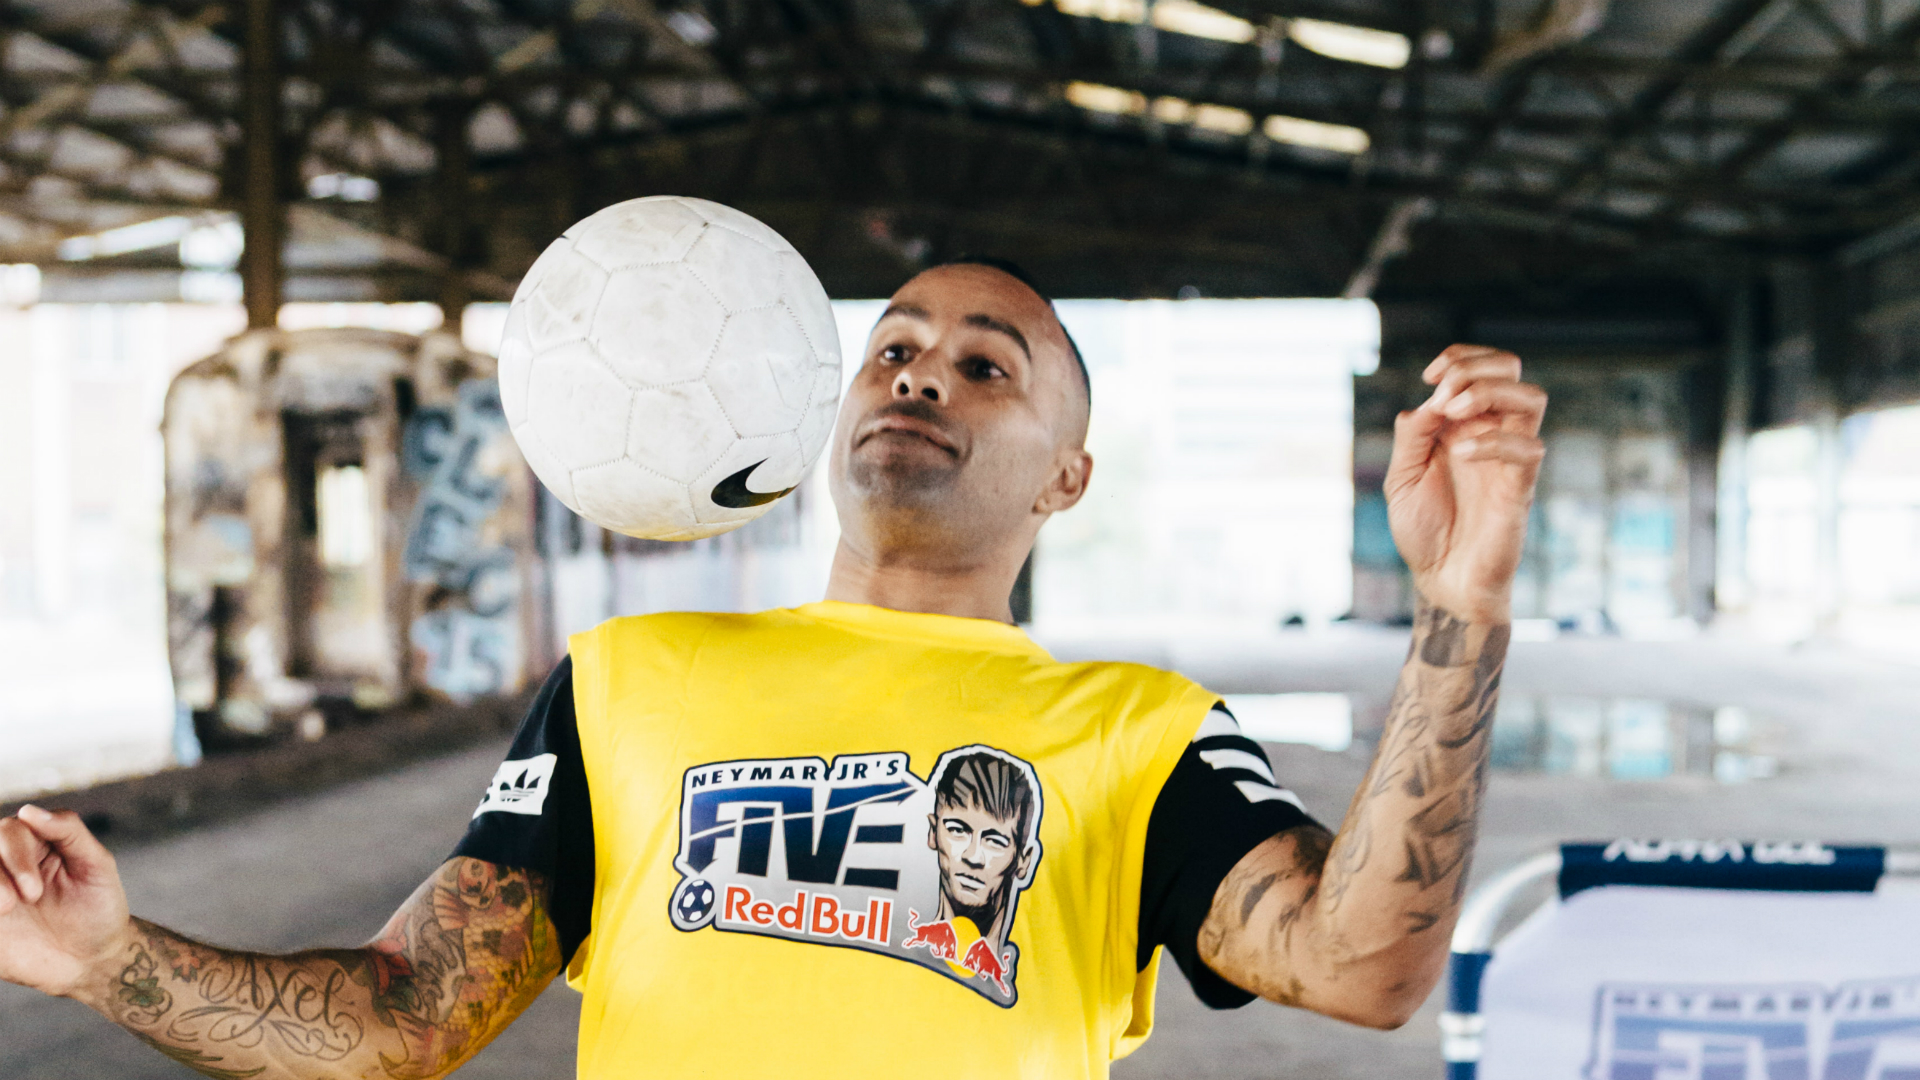 Archie Thompson Neymar Jr's Five